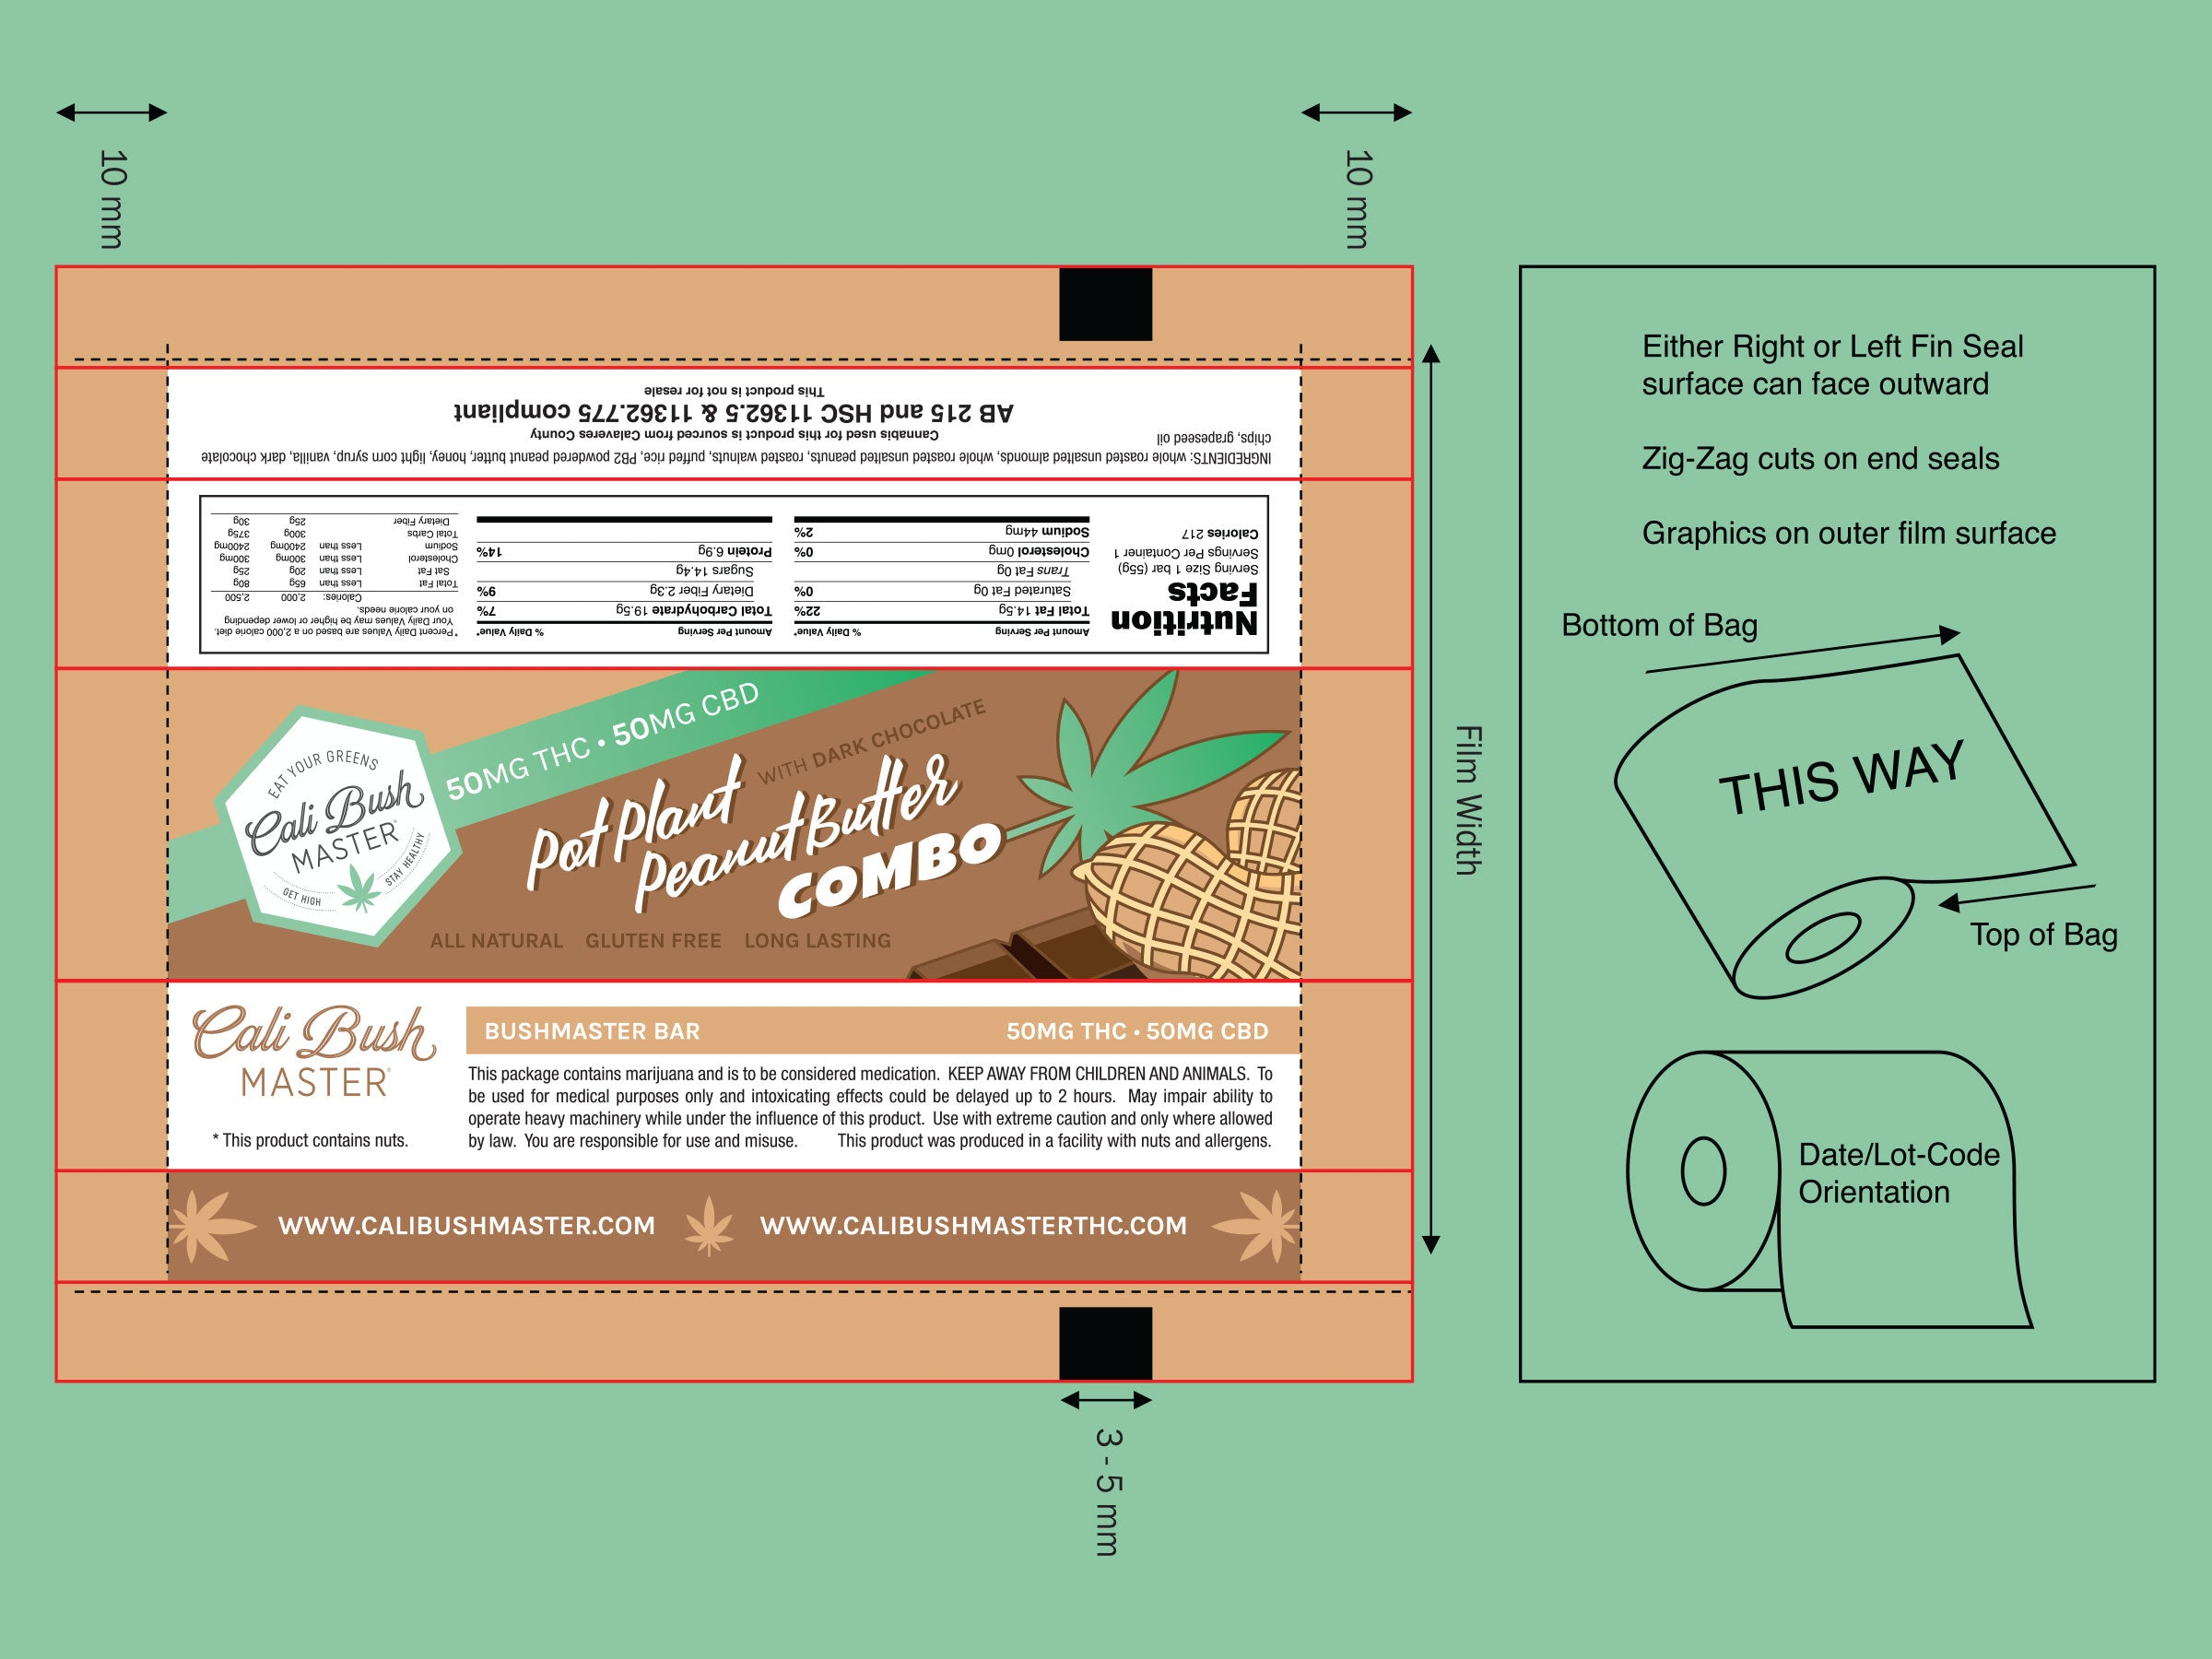 Cali Bush Master bar packaging